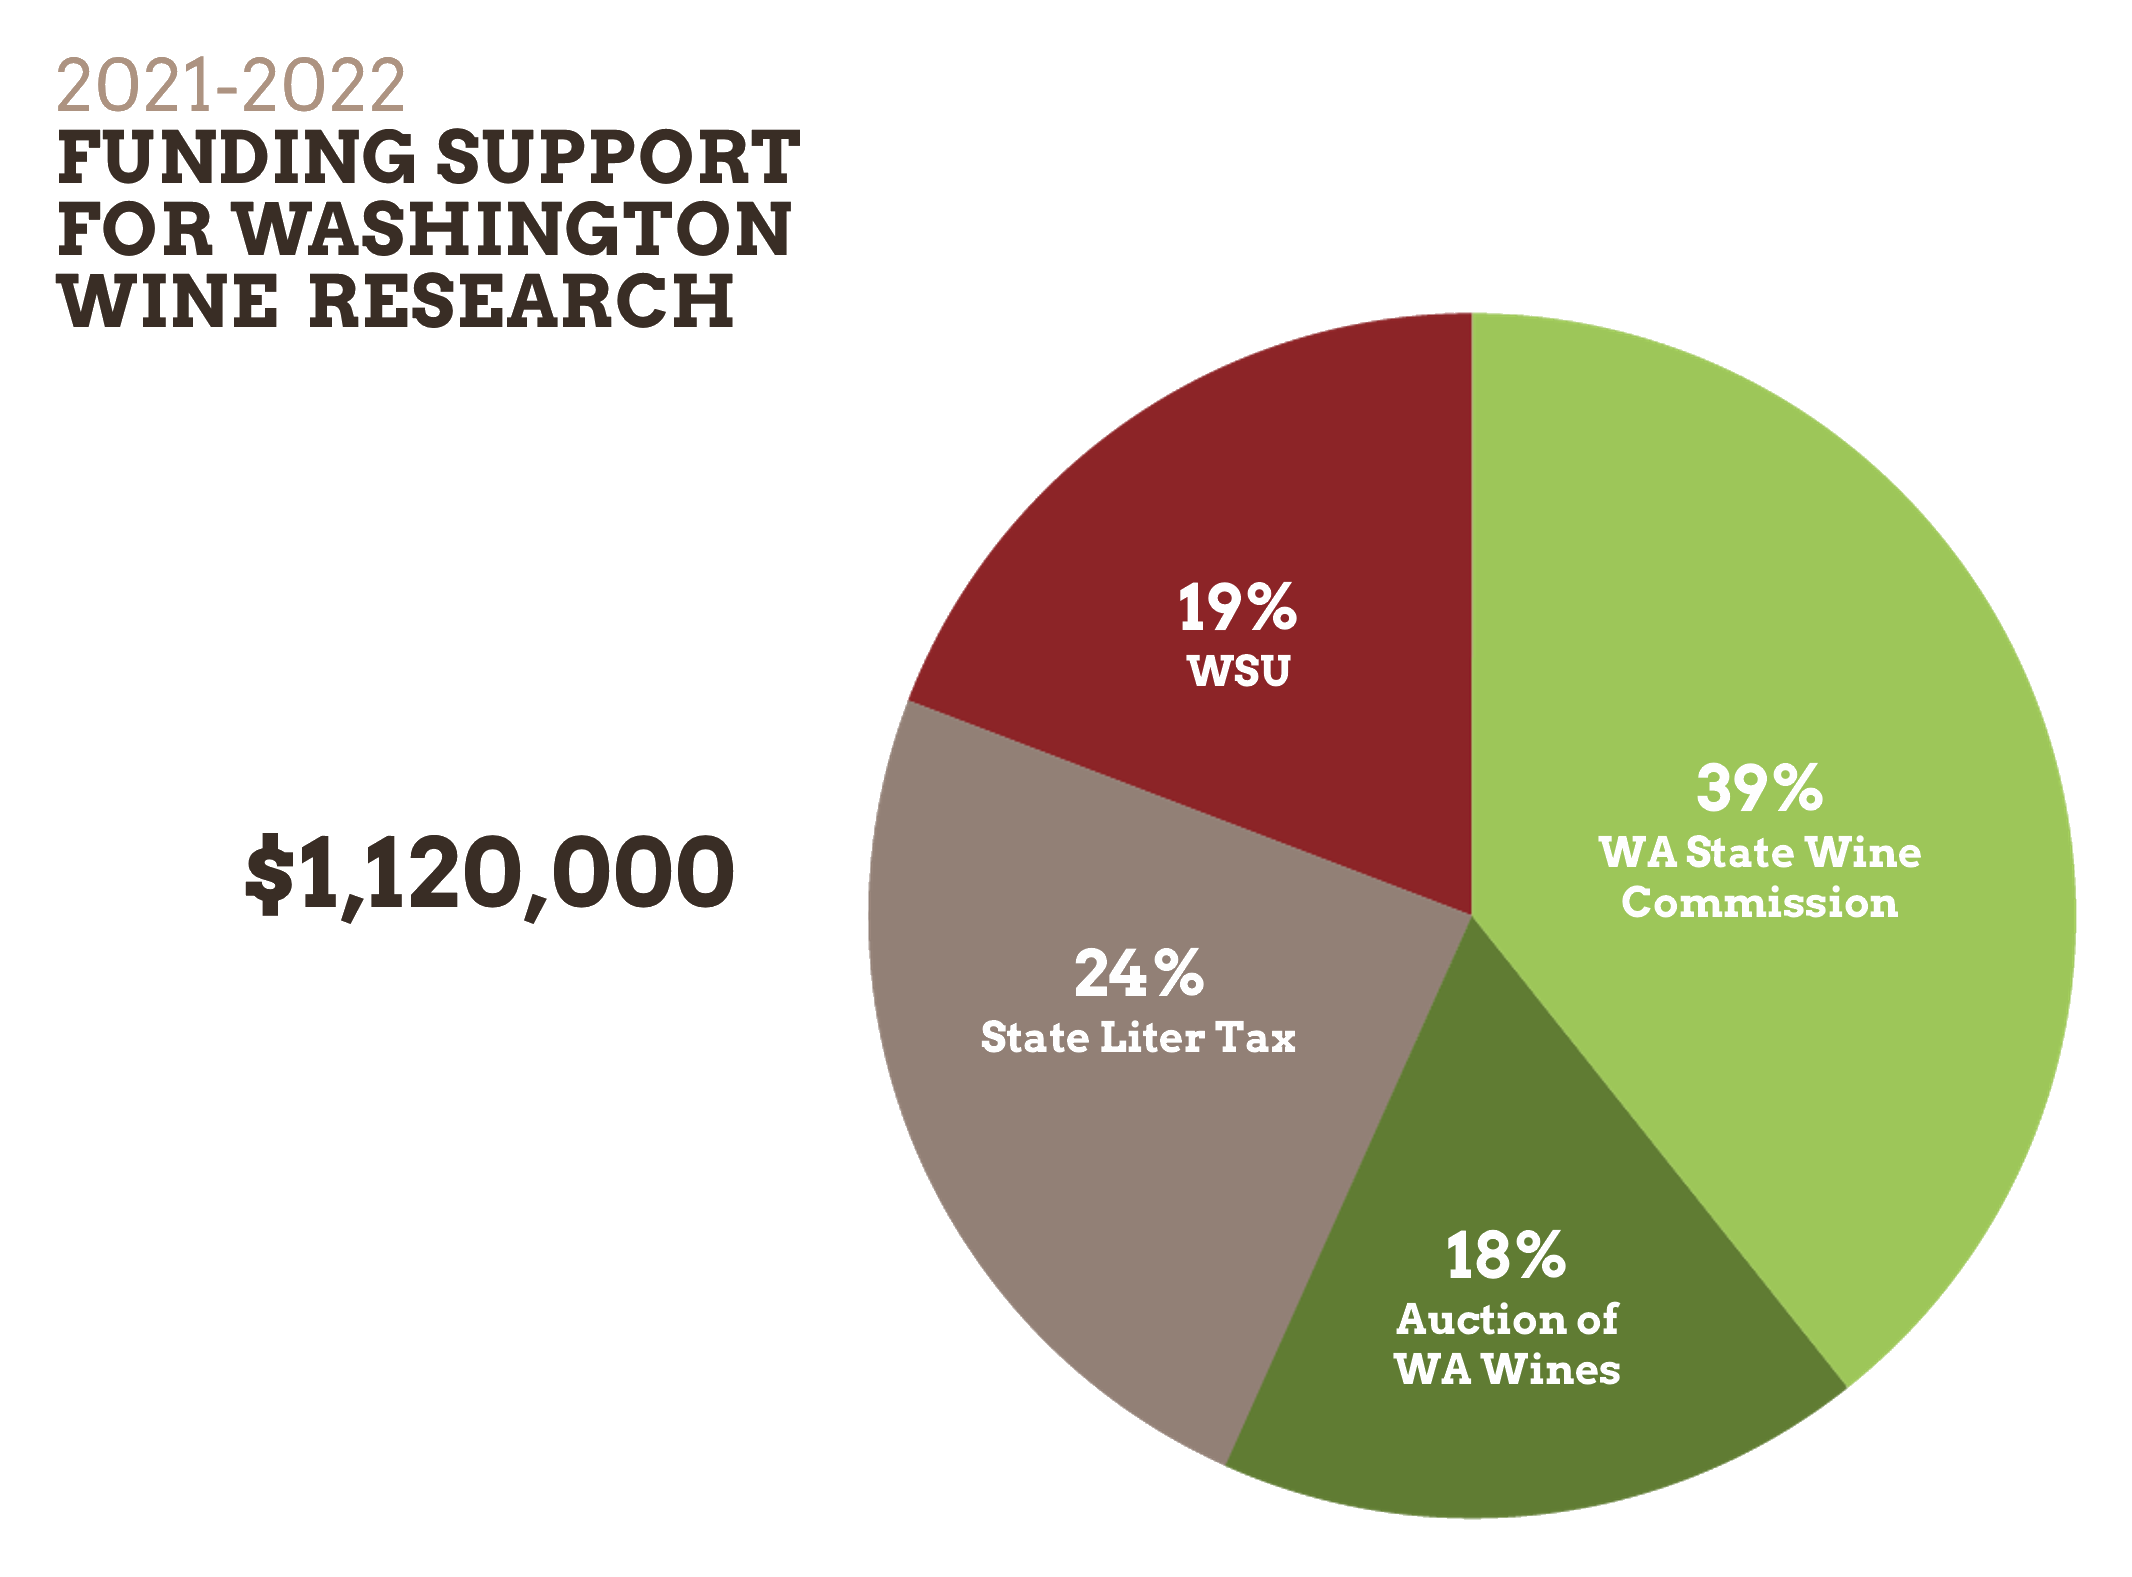 A pie chart illustrating the 2021-2022 Funding Support for Washington Wine Research.